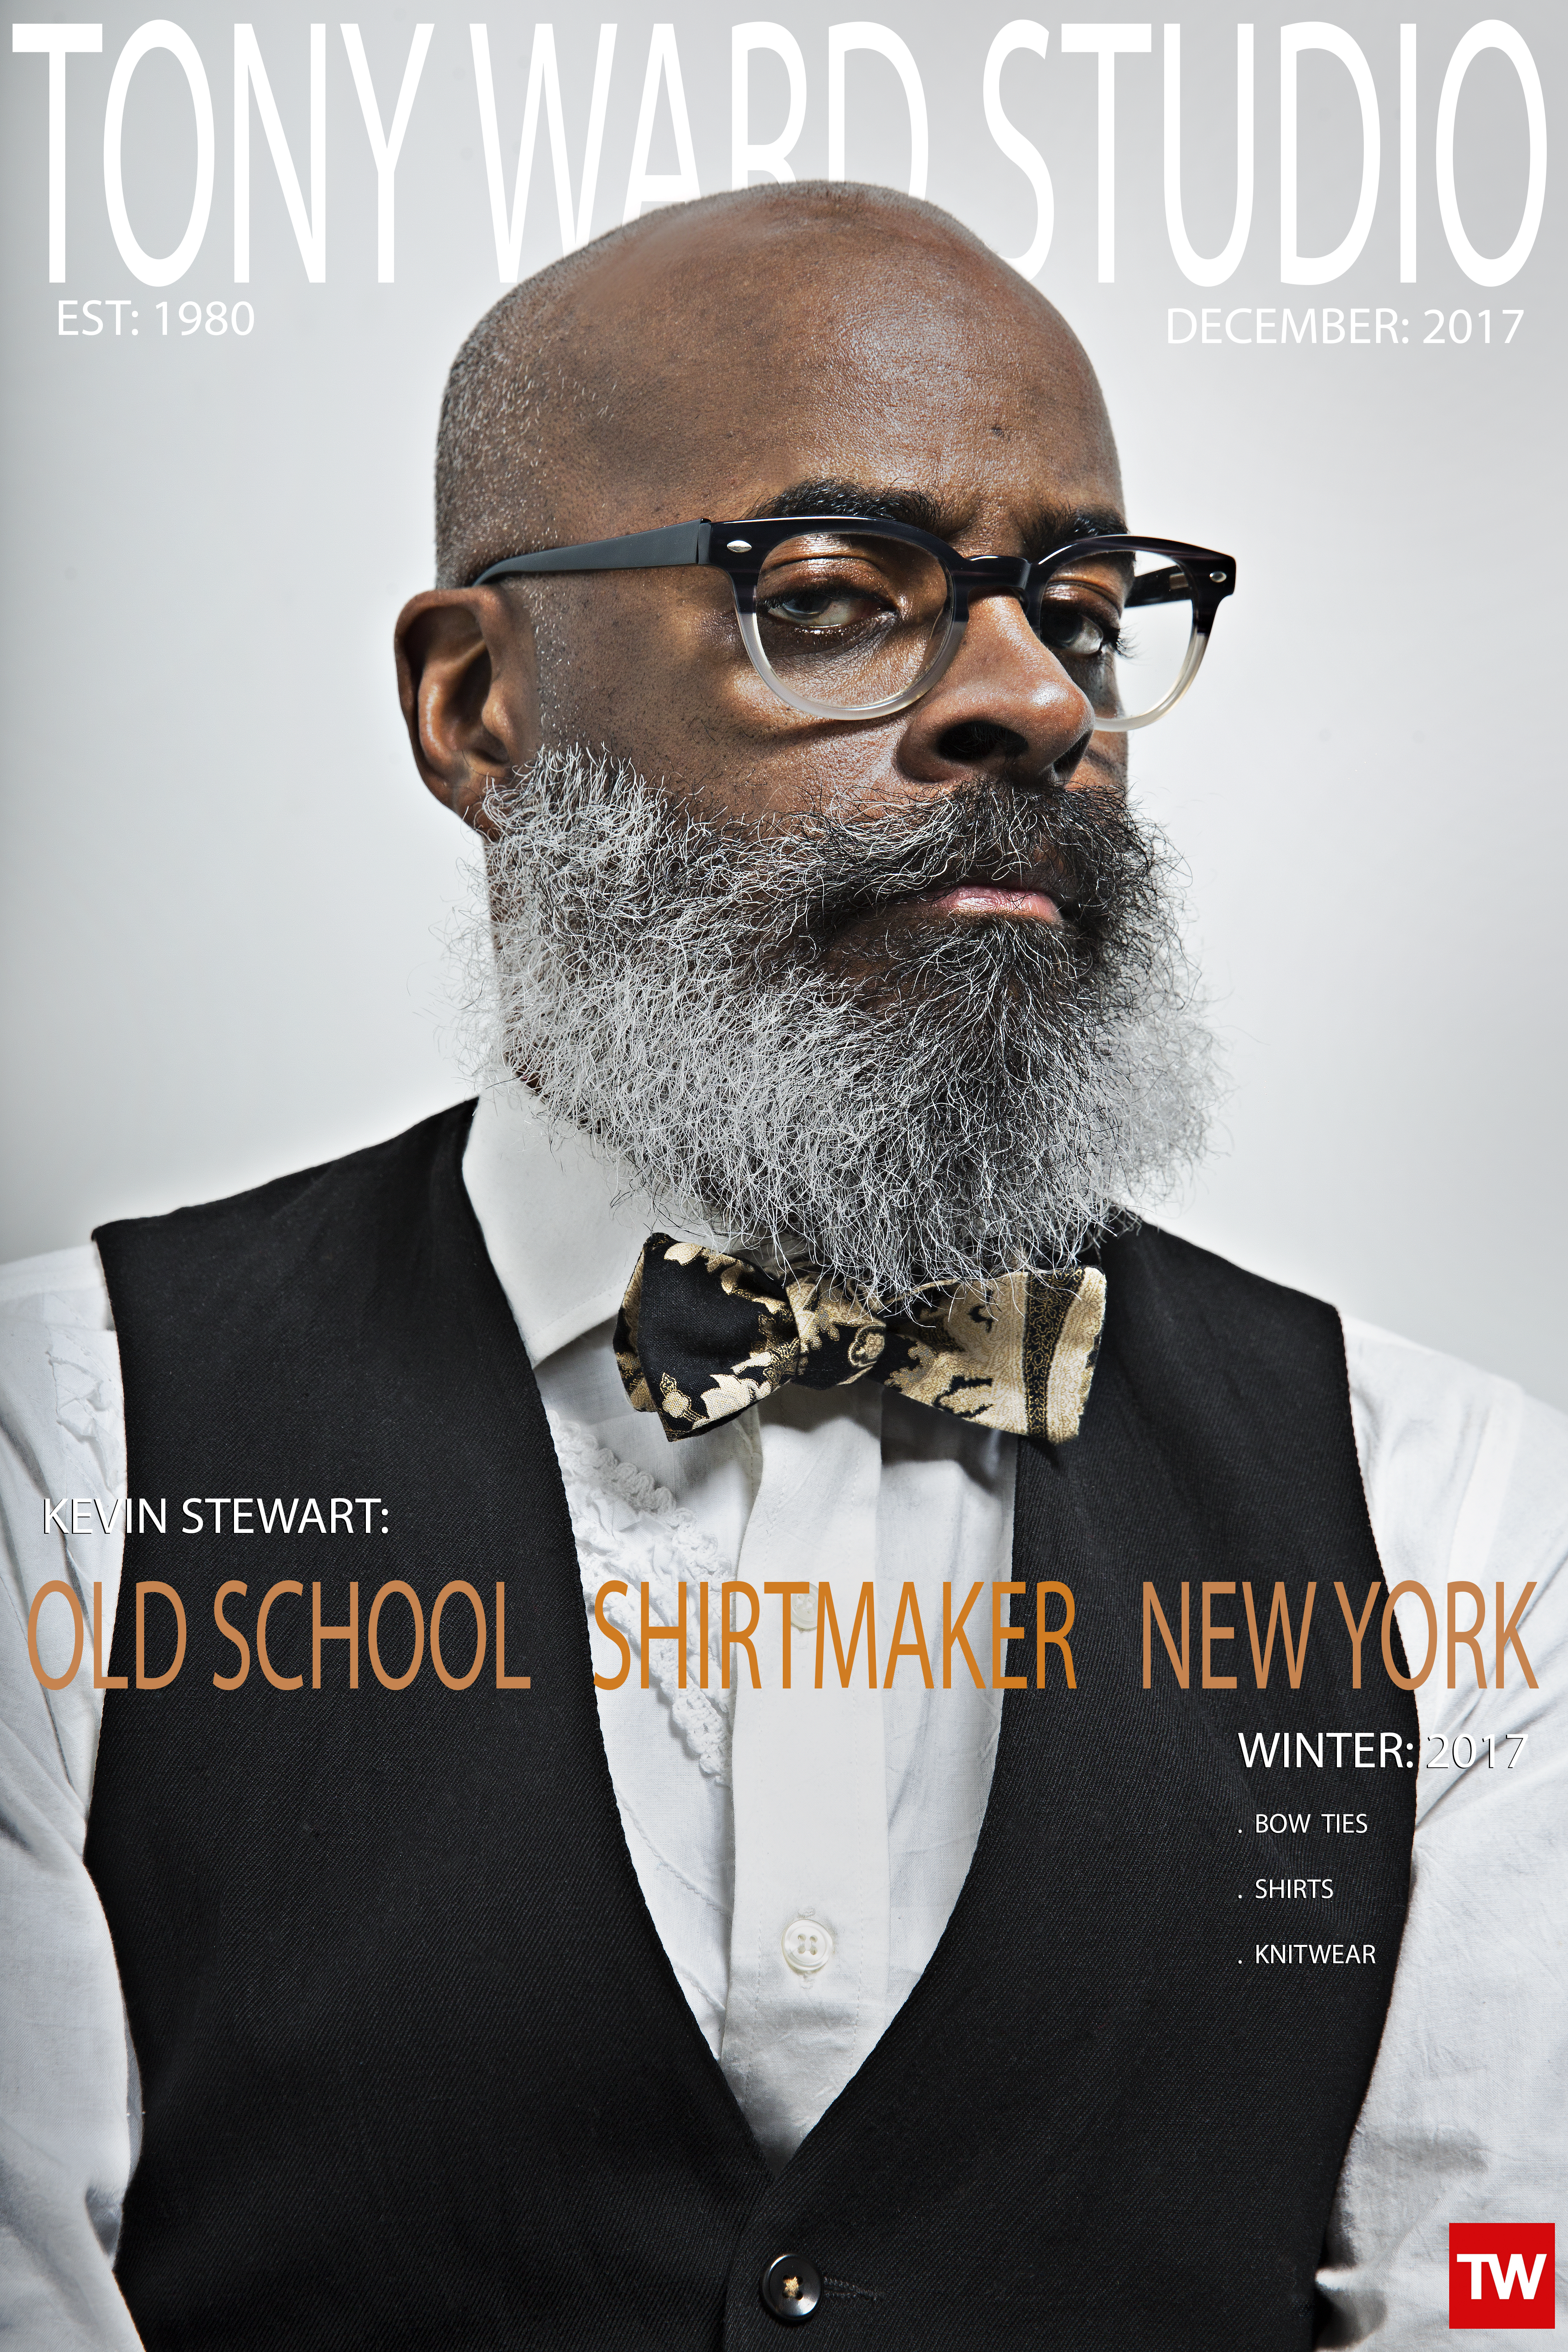 Kevin Stewart: Old School Shirt Makers New York